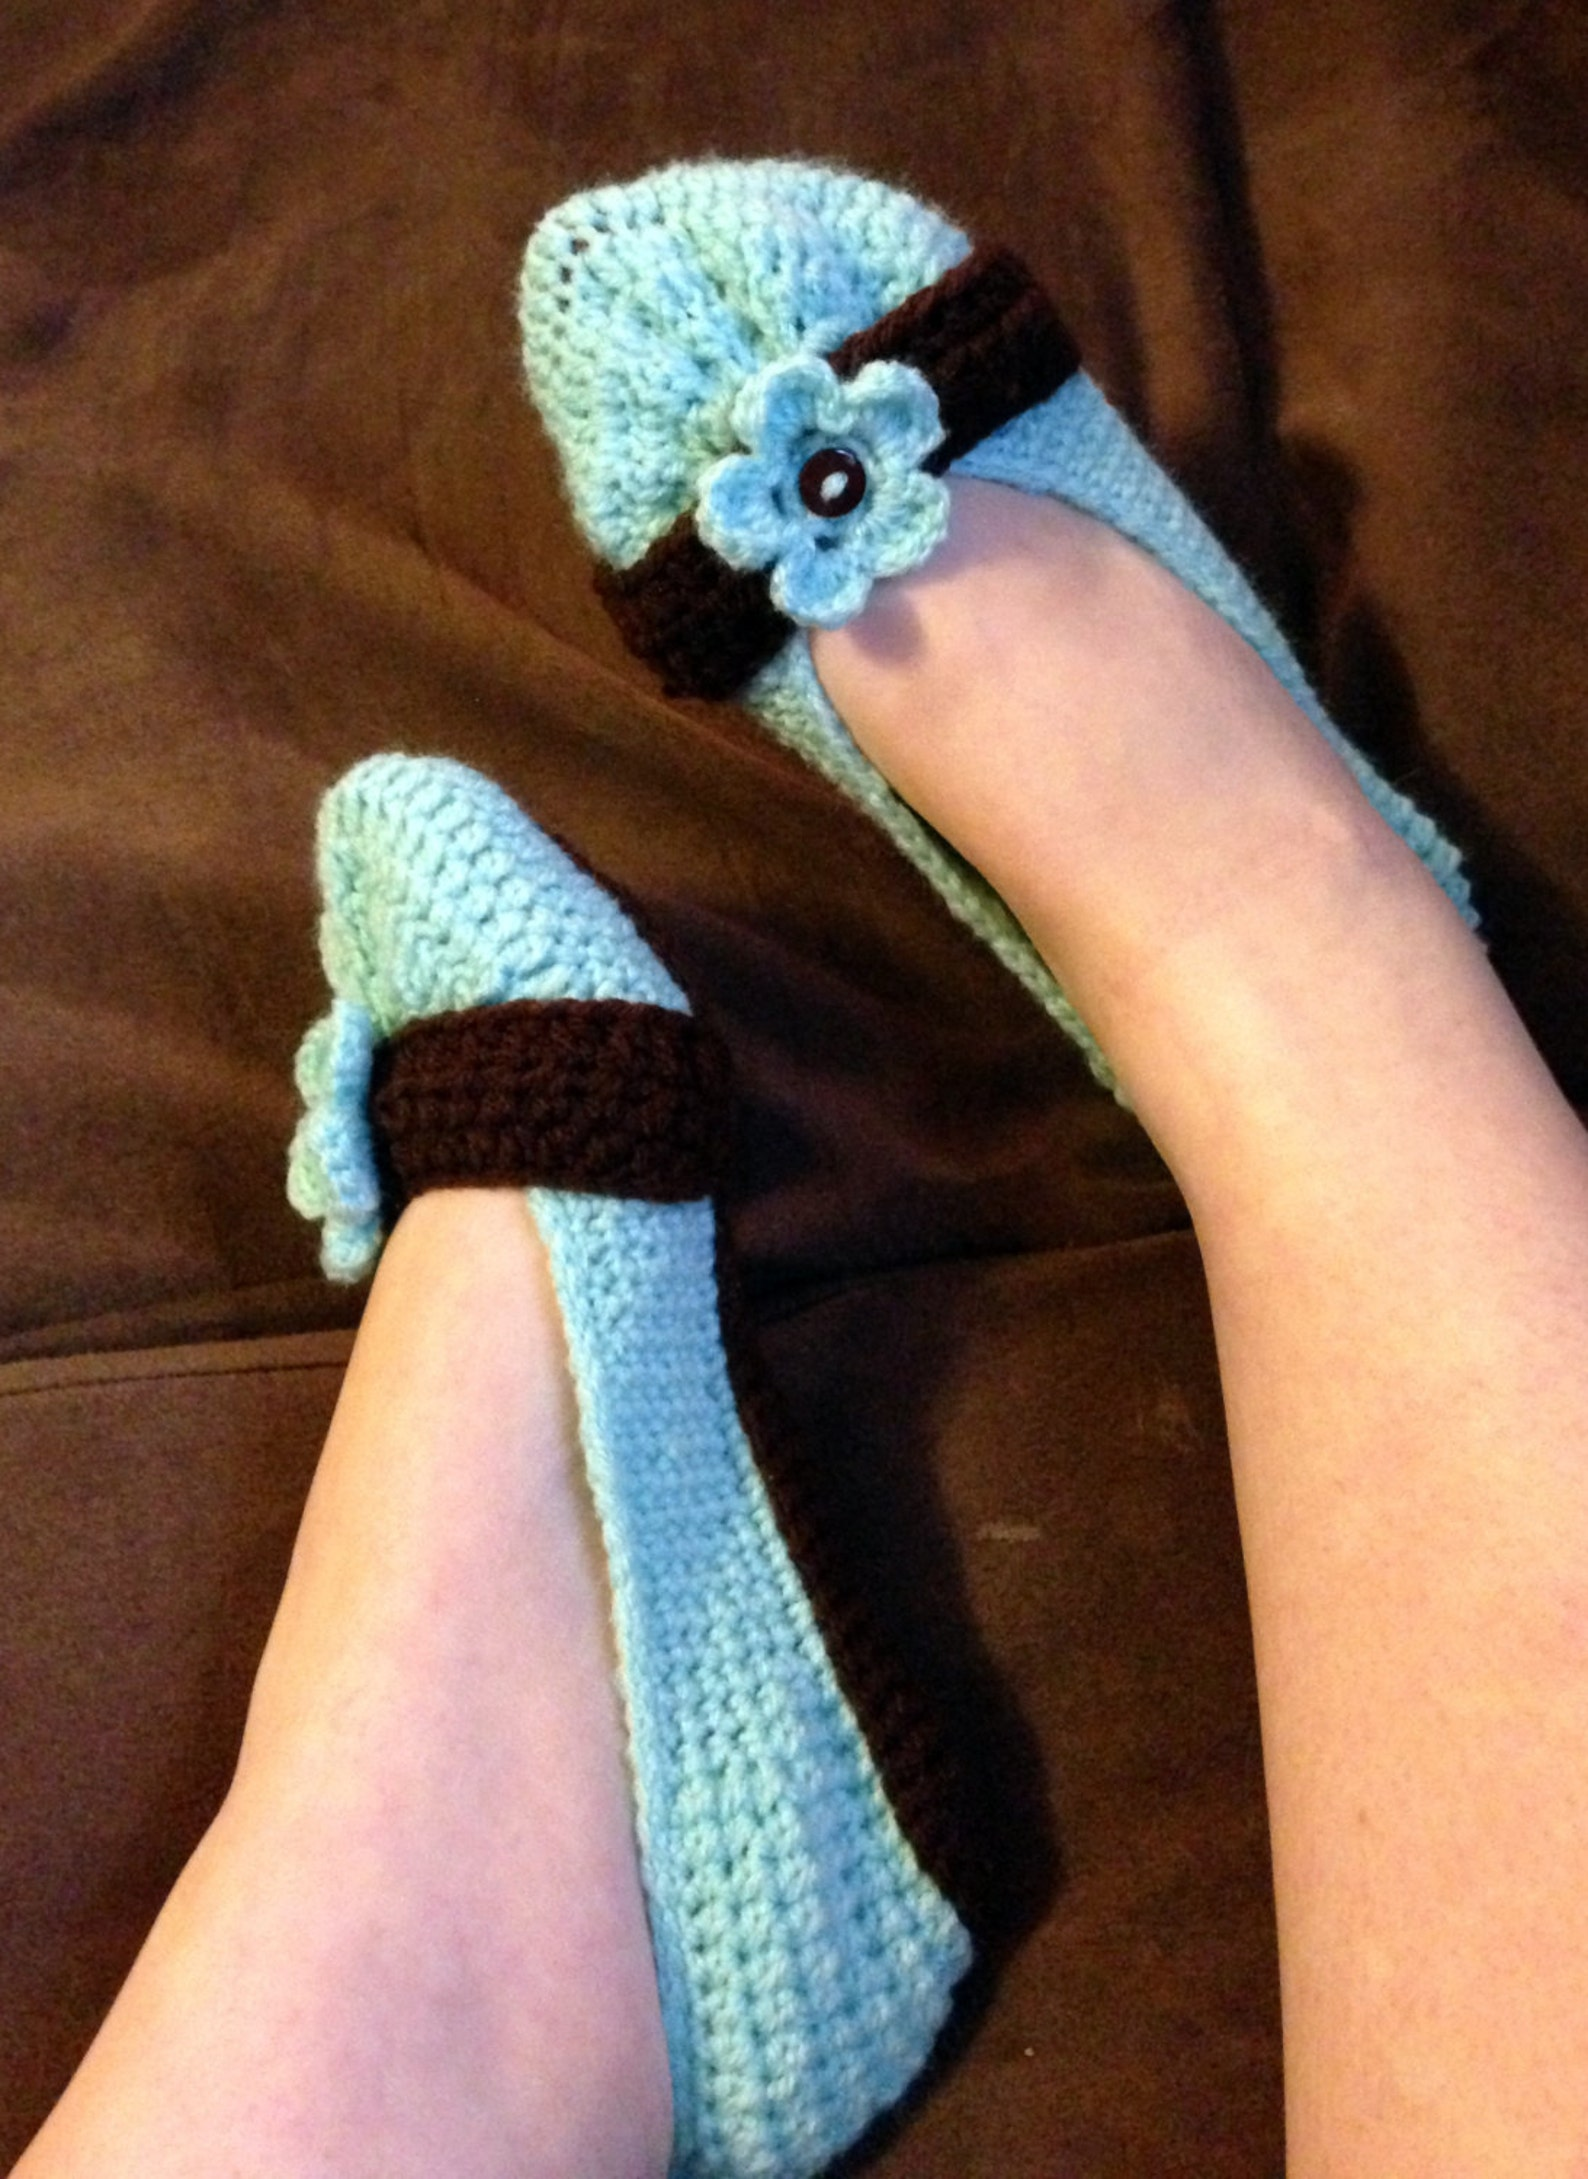 crochet adult womens cute button flower ballet flat house slippers sizes 5-10 custom made to order